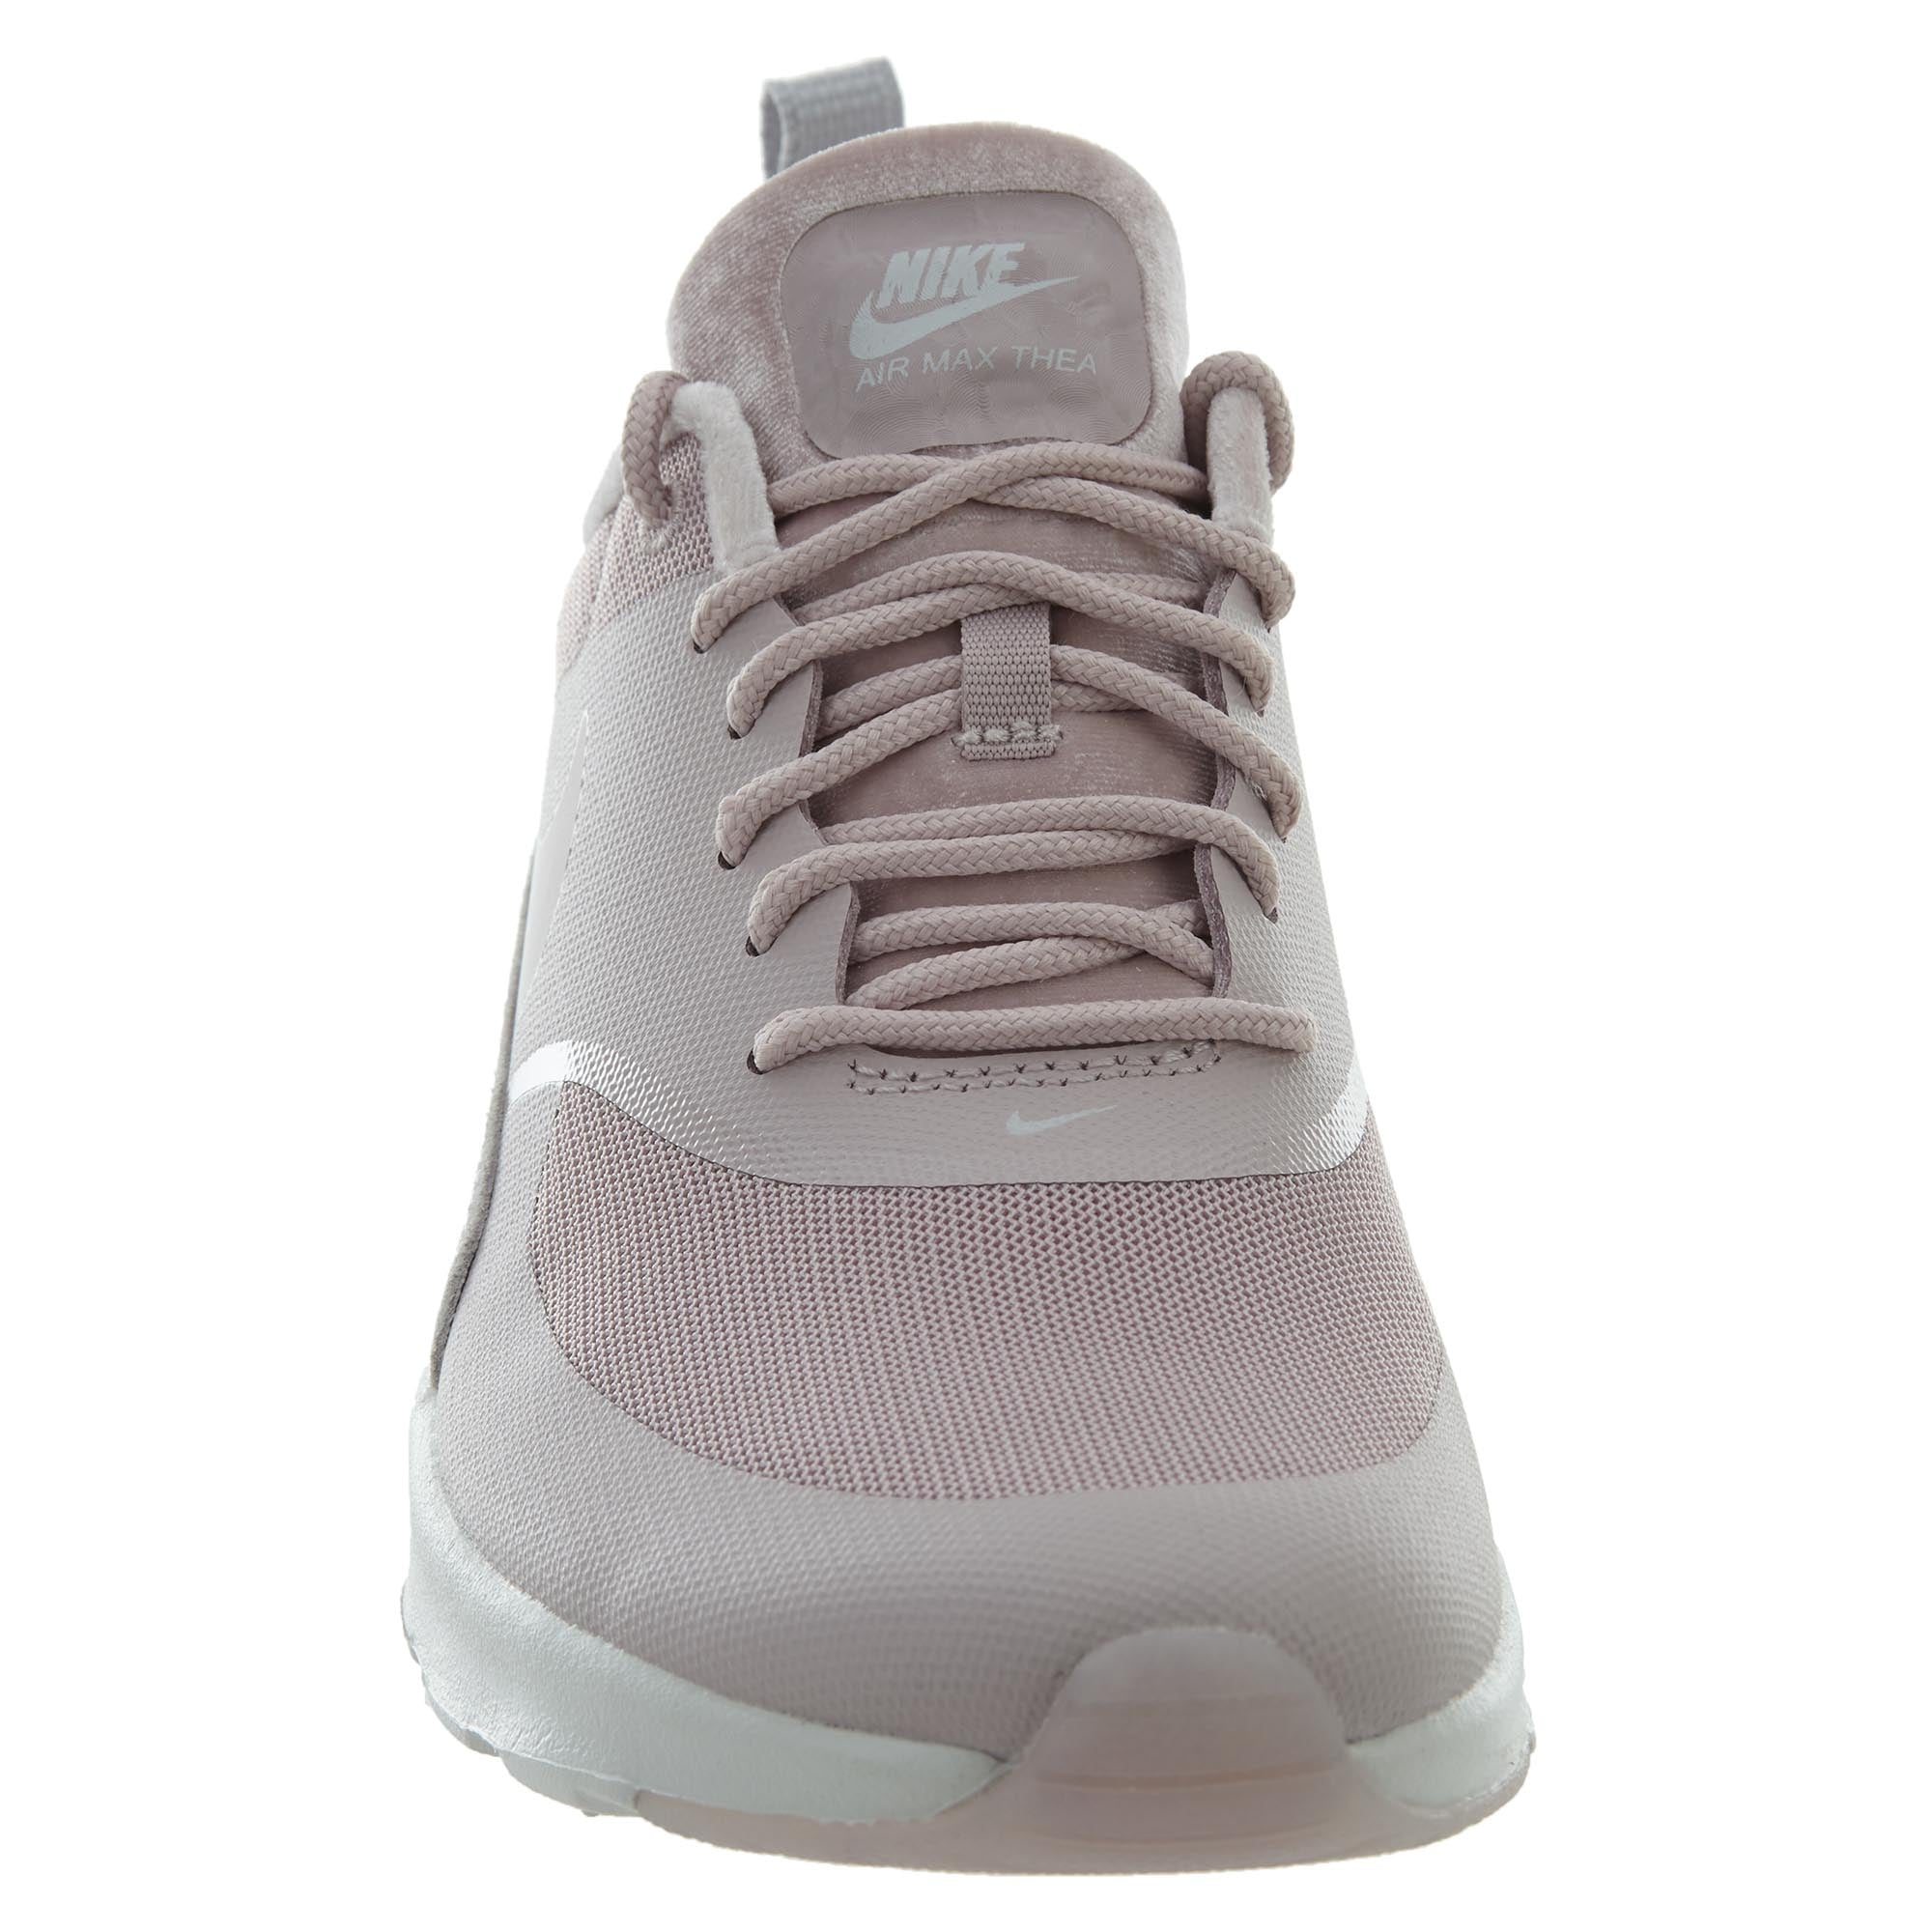 timeless design ec147 39246 Nike Air Max Thea Lx Womens Style   881203